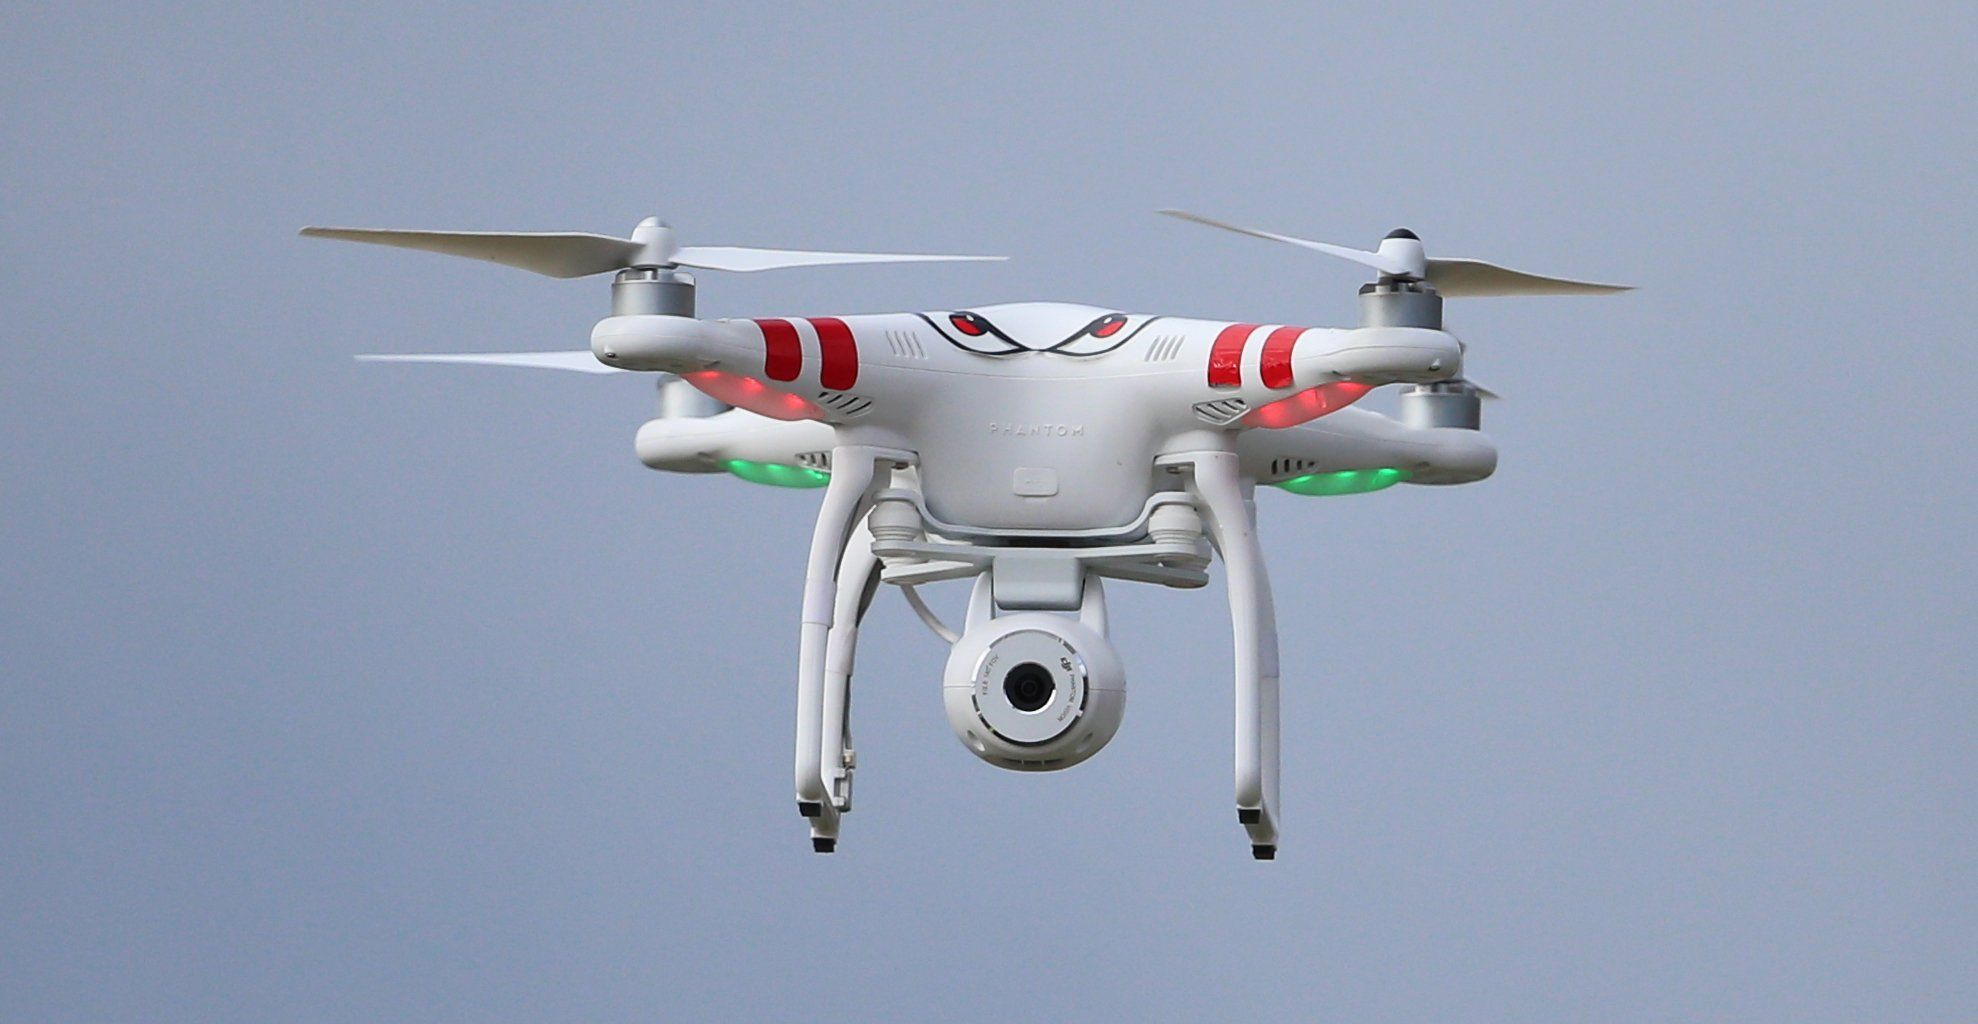 Drone nearly flies into passenger plane